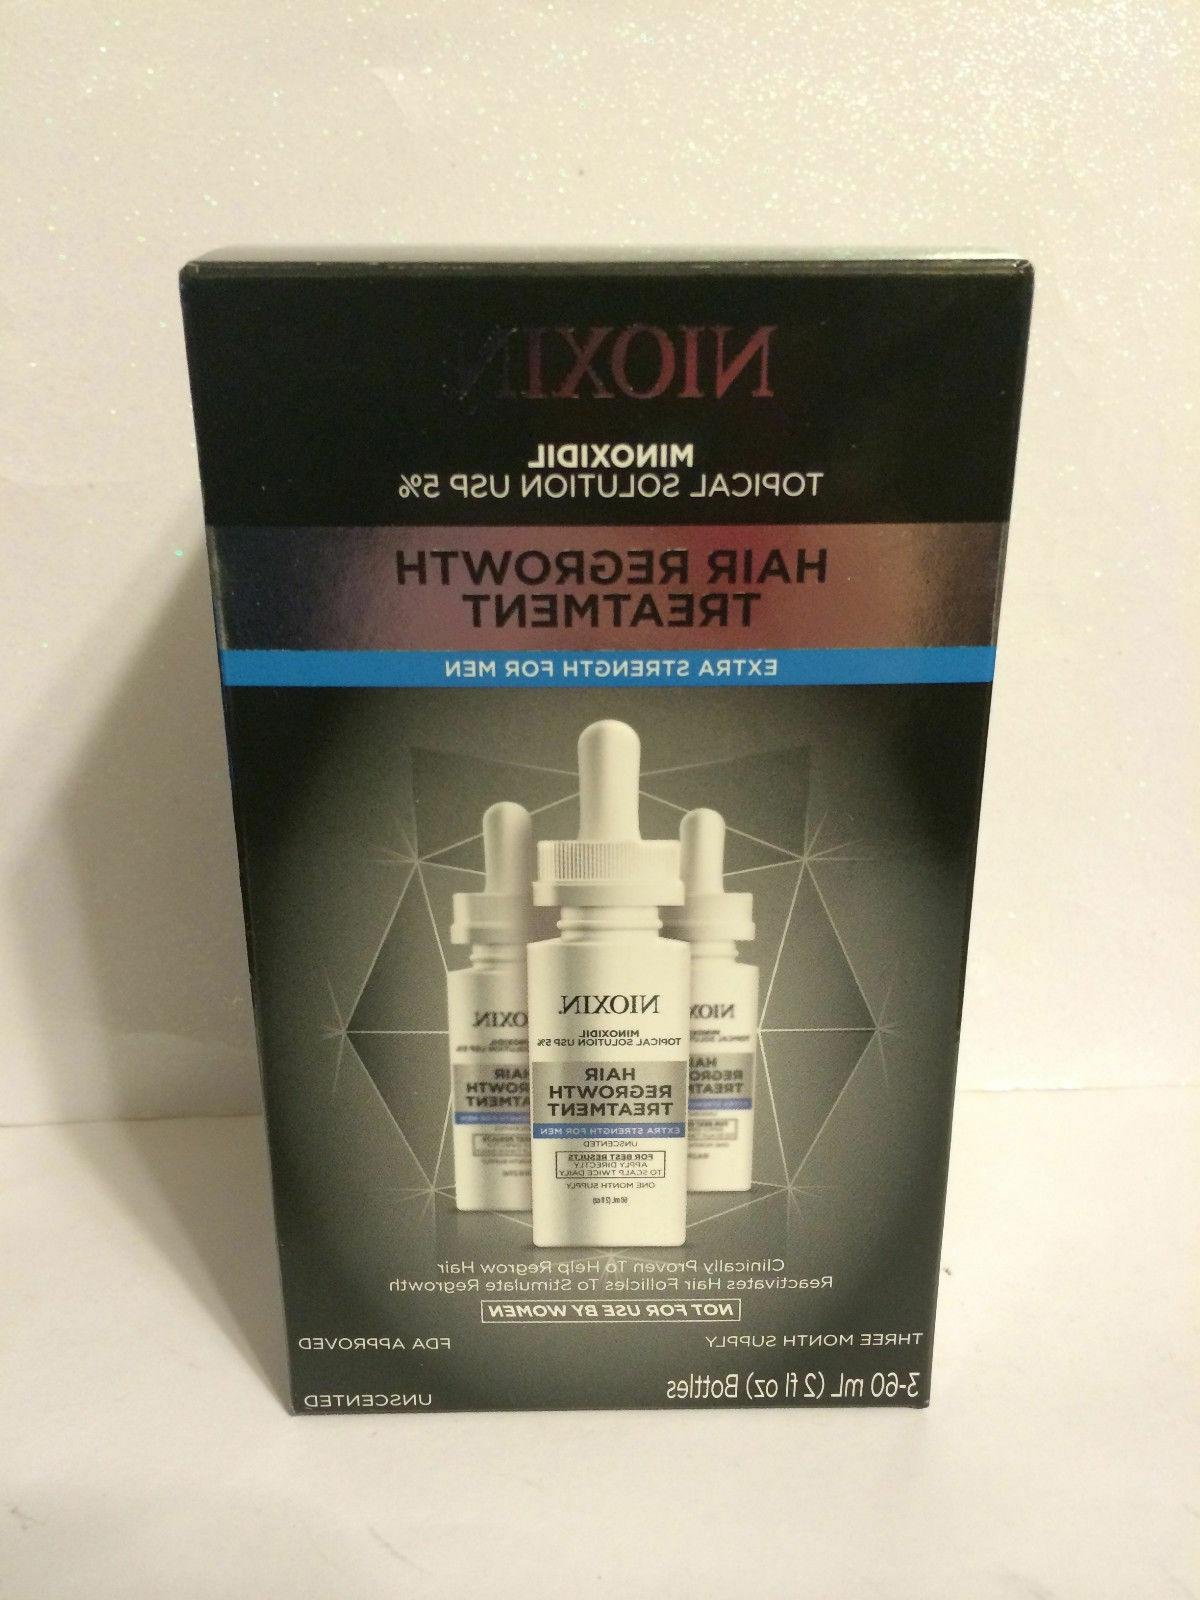 NIOXIN 5% MINOXIDIL HAIR REGROWTH TREATMENT FOR MEN 30 or 90